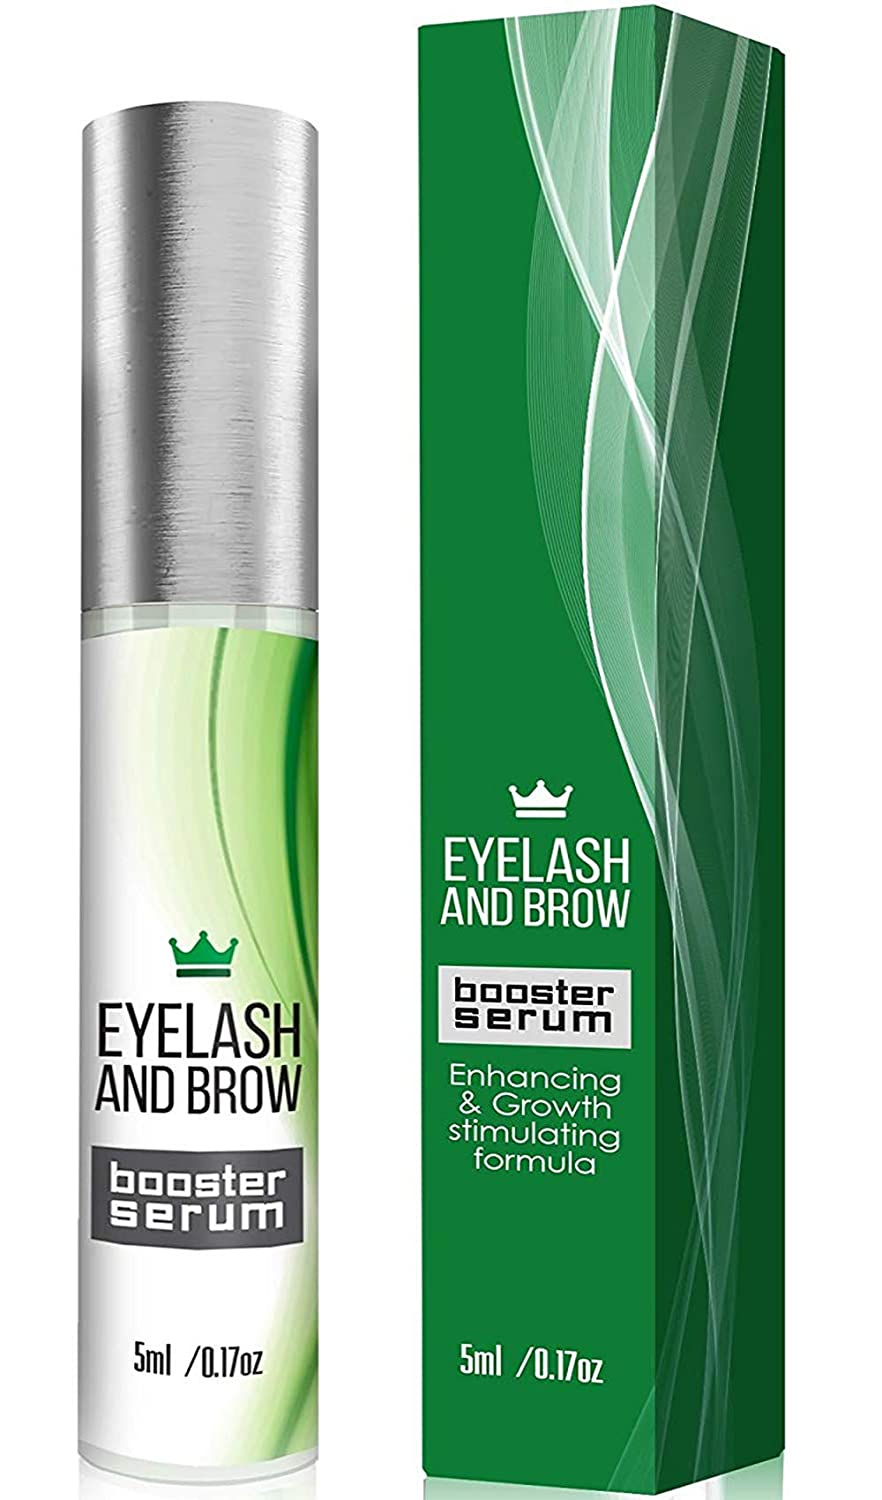 Natural Eyelash Growth Serum - Lash Booster & Eyebrow Enhancing Serum to Grow Thicker, Longer Lashes - USA-Made Eyelash Enhancer and Conditioner